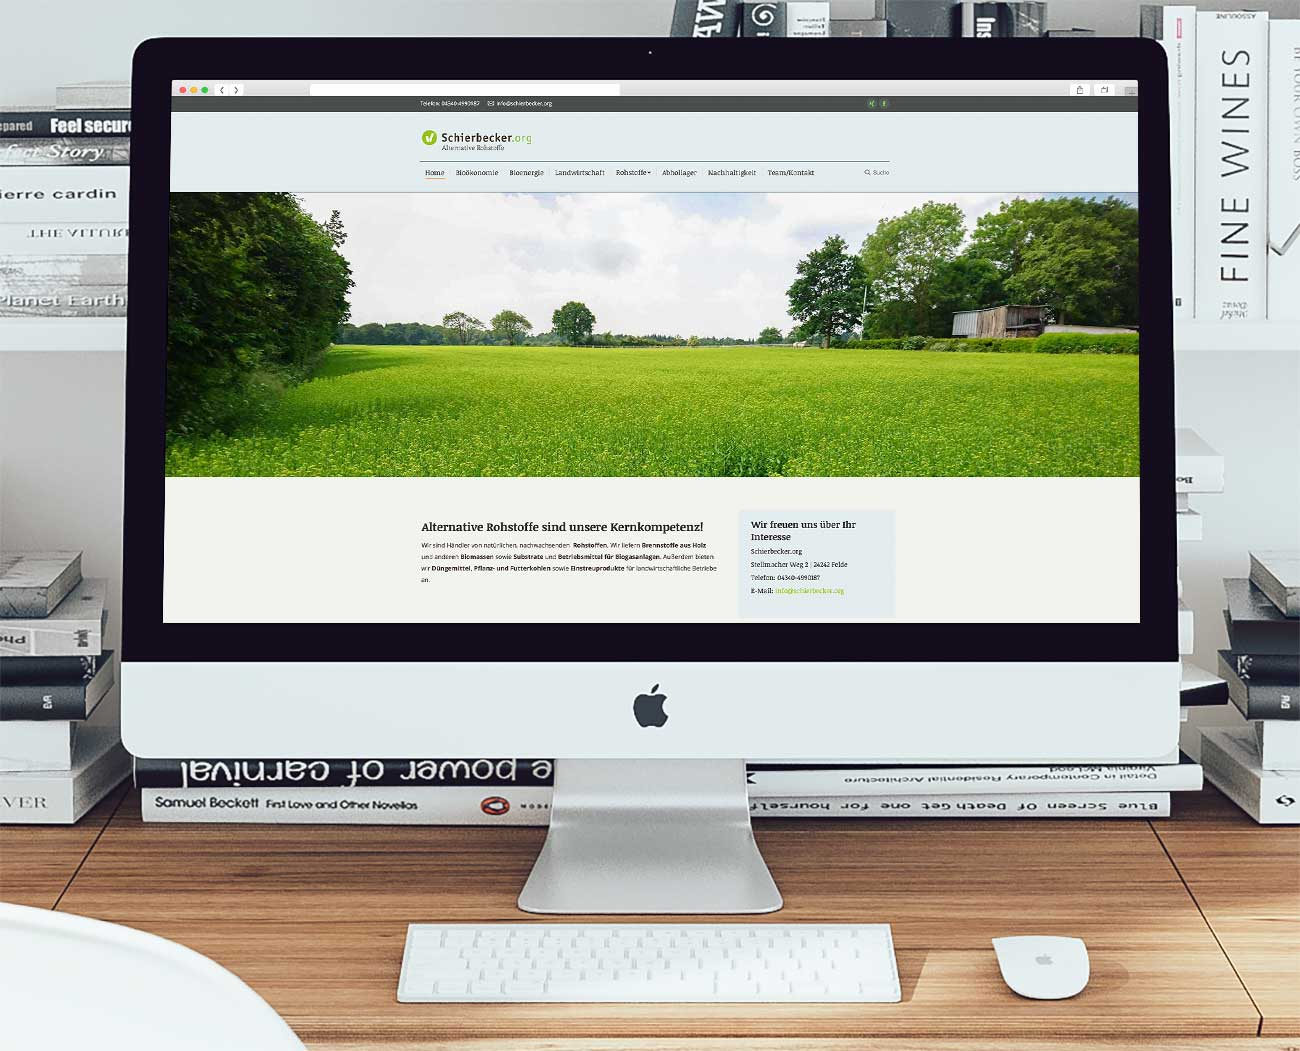 Schierbecker-Website-Workspace-IMac